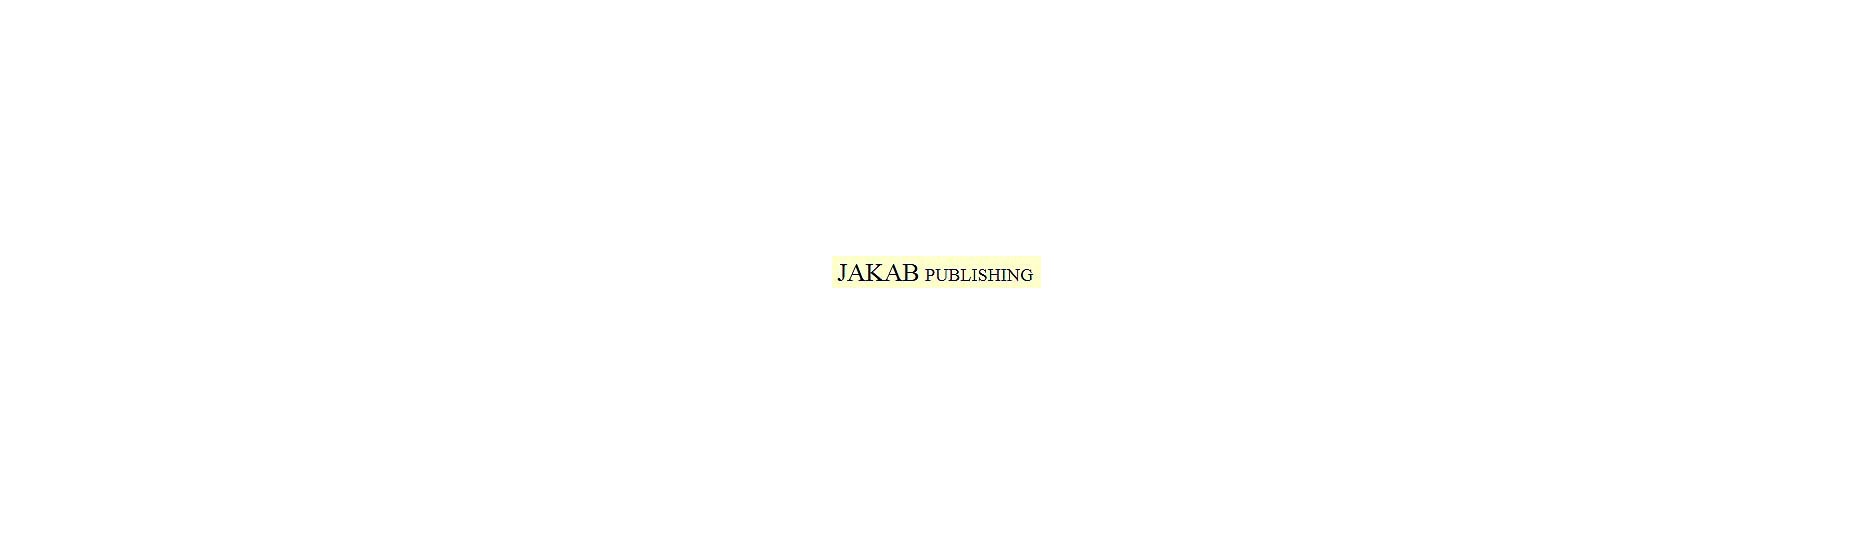 JAKAB Publishing